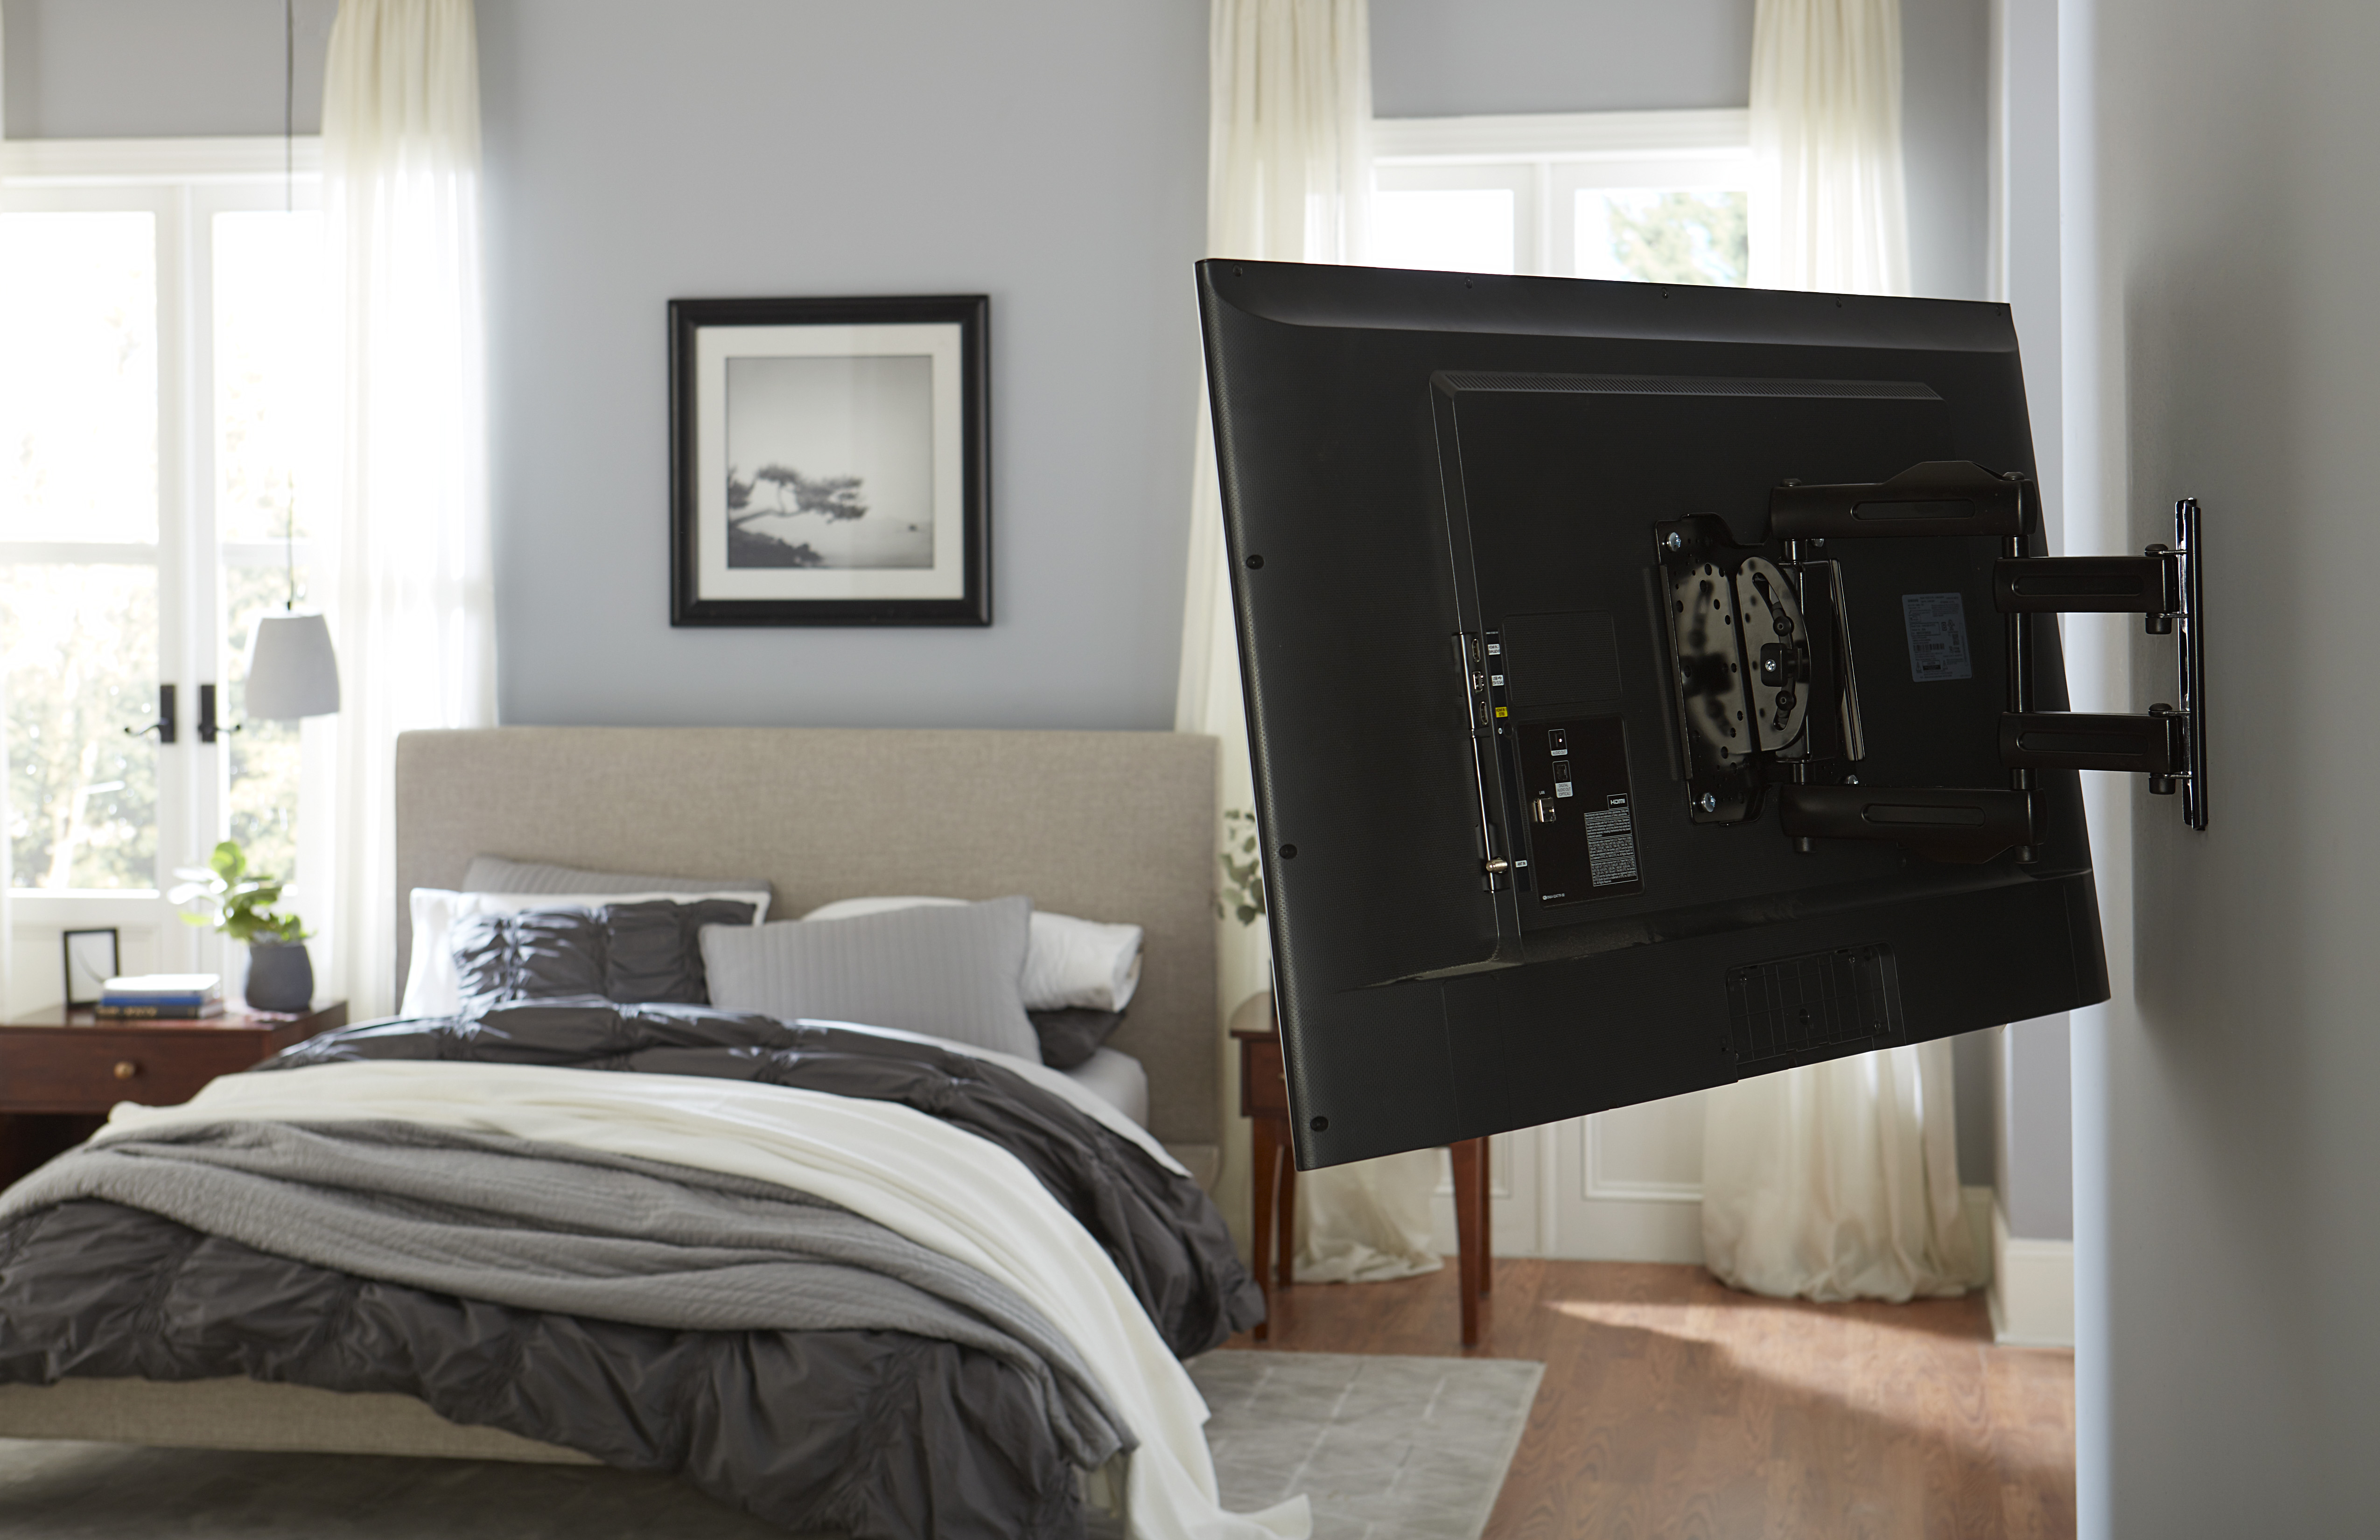 Bedroom_RS1_TV_extended_rotated1_V2